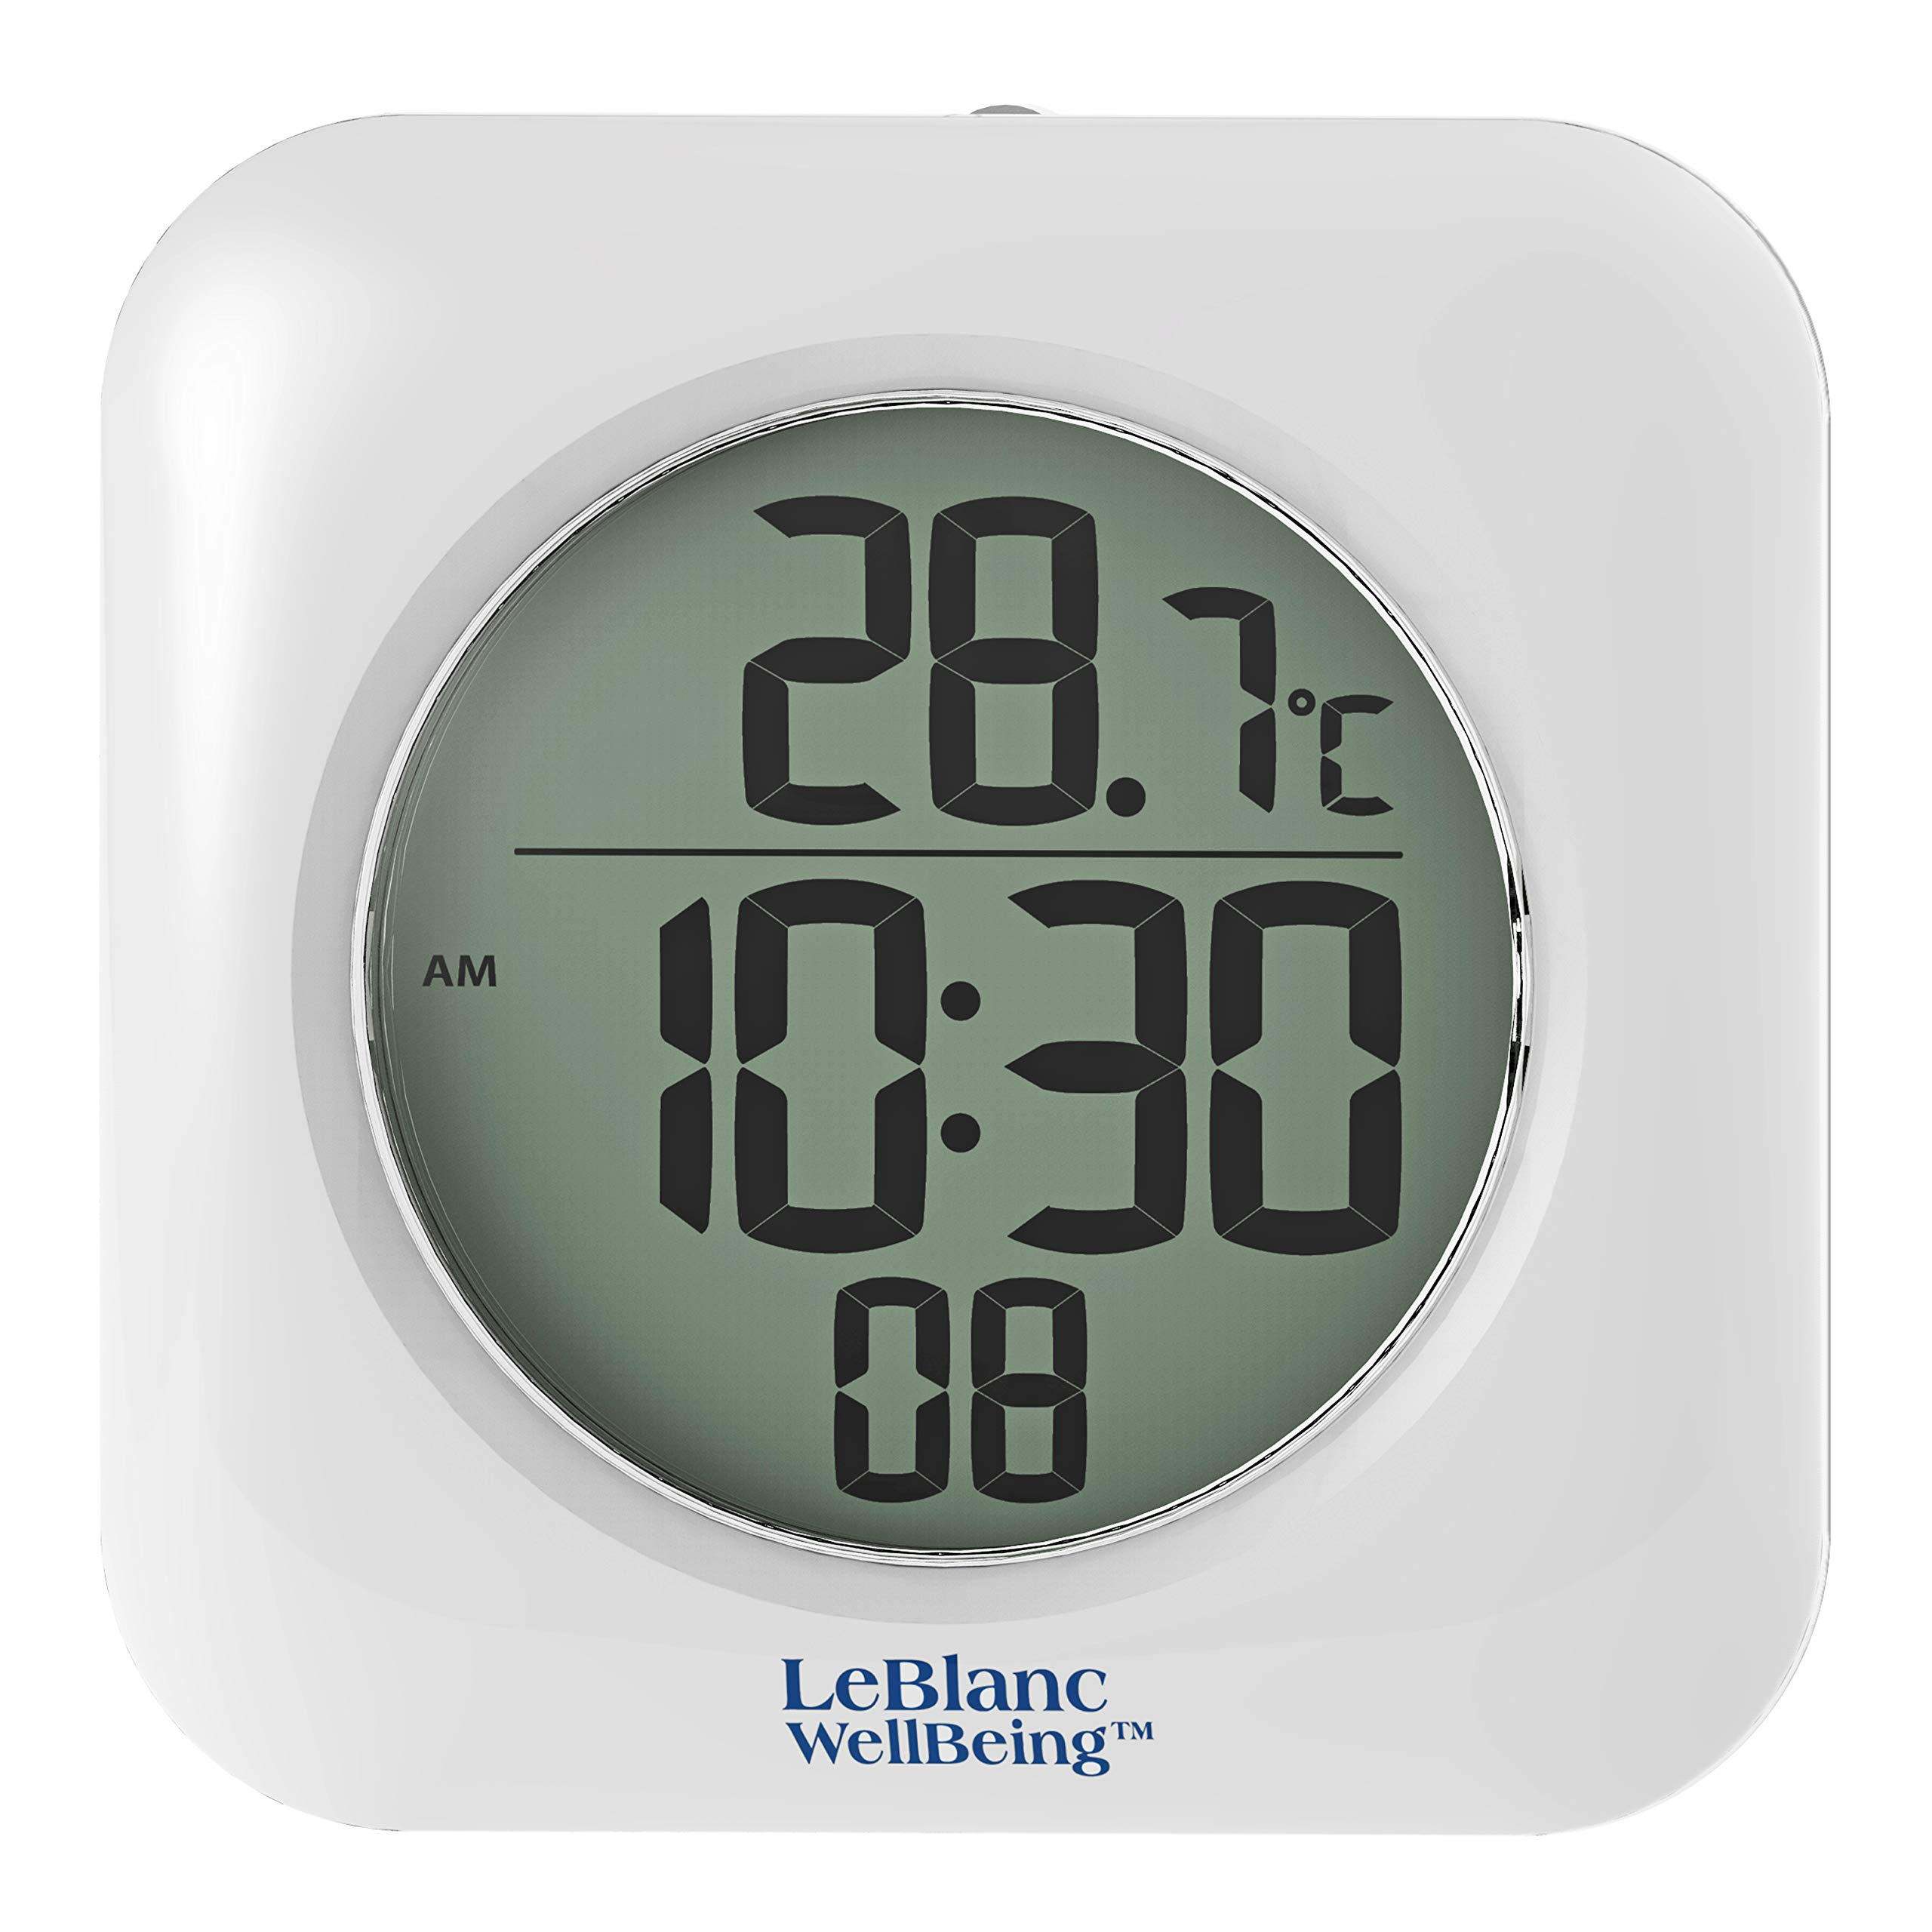 LeBlanc WellBeing Waterproof Bathroom Shower Clock Mounts with 4 Suction Cups, Hanging Hole, or Shelf Bracket. Time 12/24 Hr and Indoor Temp. Great for RV, Camper, Boat, Gym, Hot Tub, Country Club by LeBlanc WellBeing